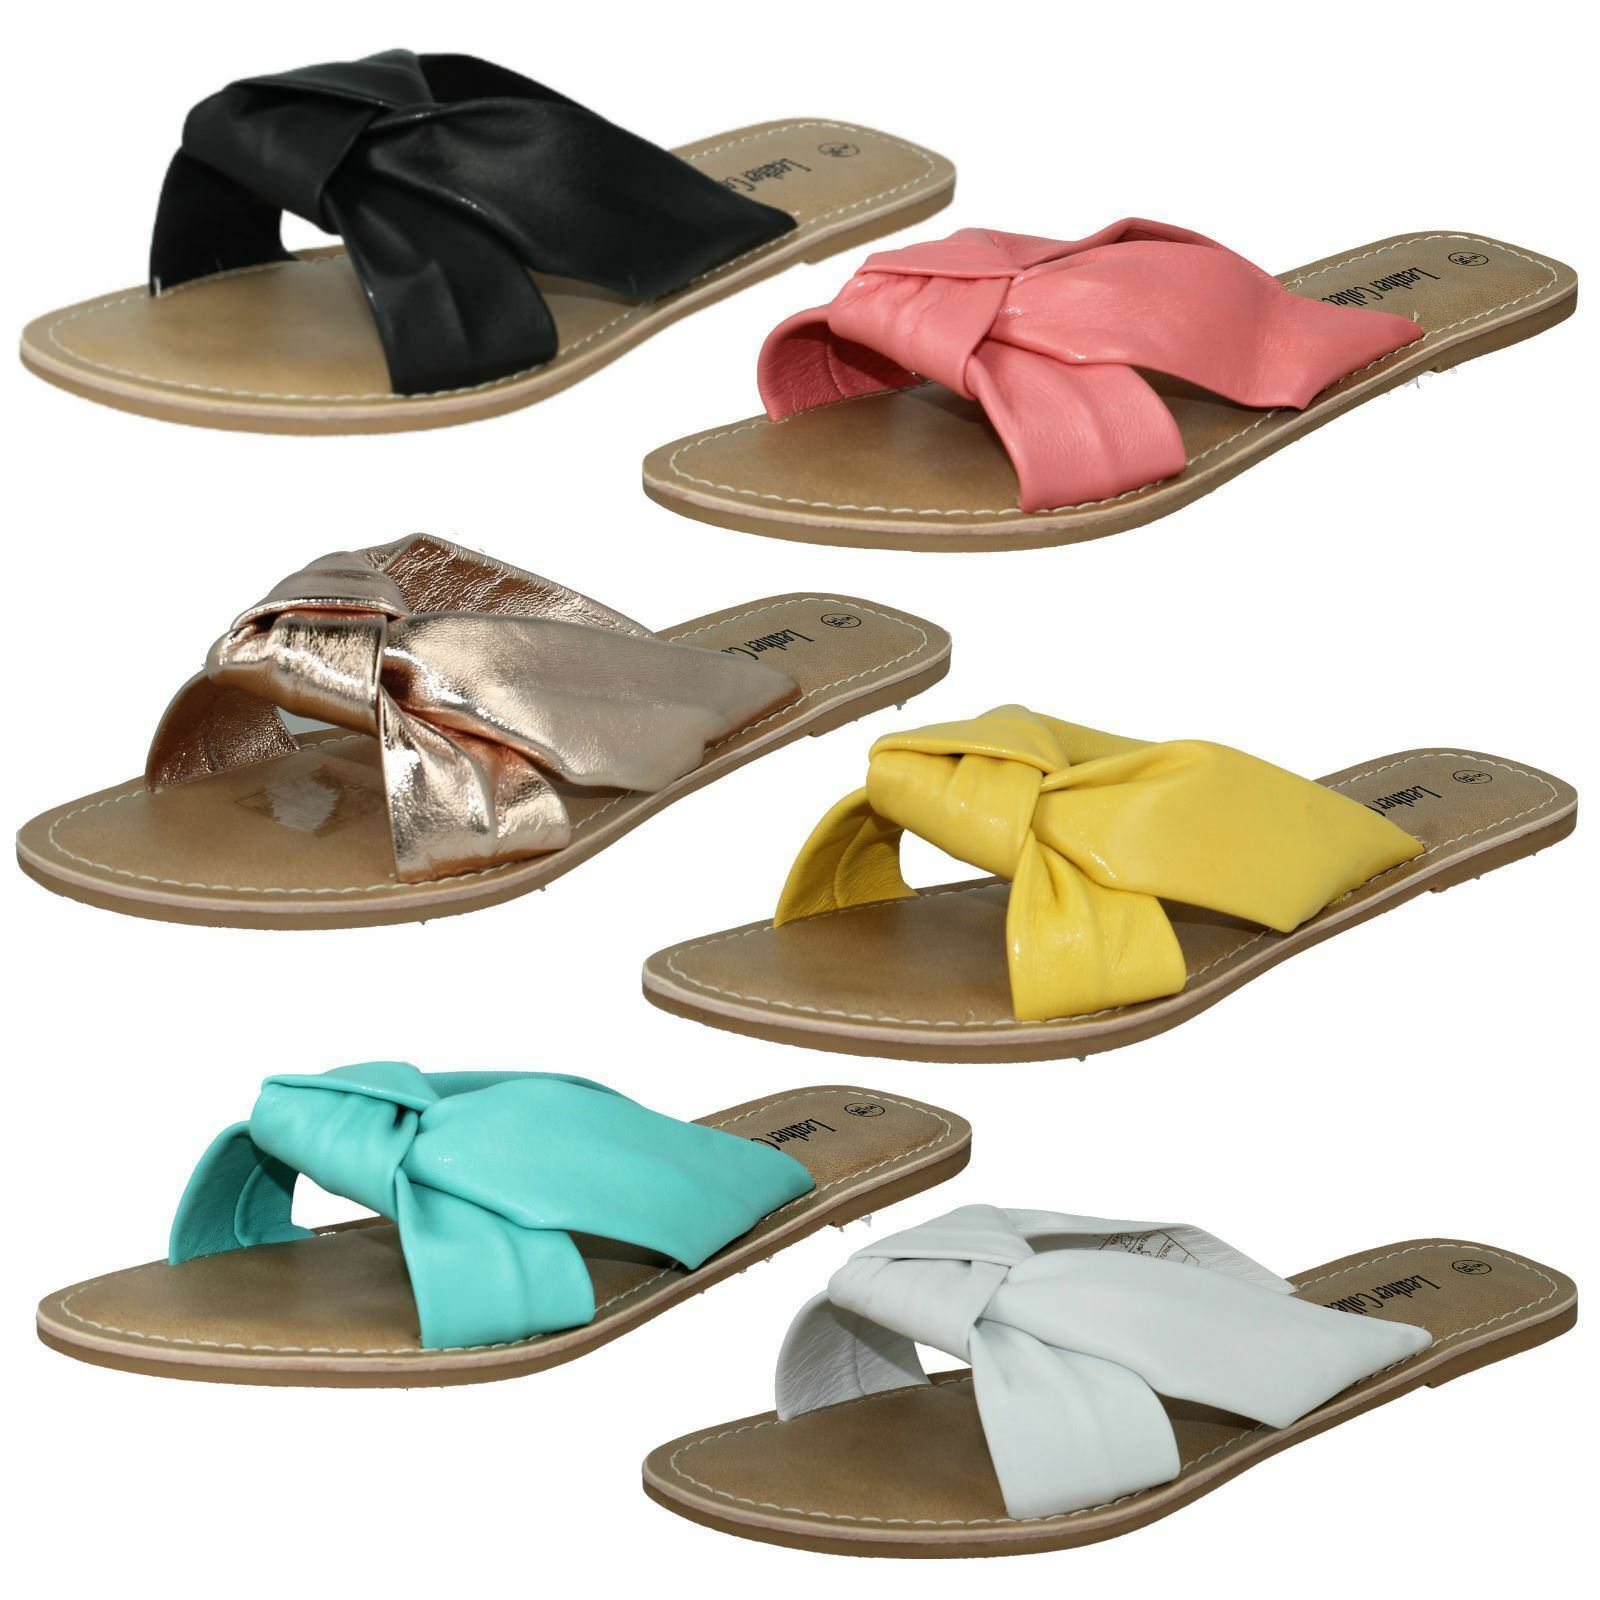 Ladies F0R0150 Twisted Straps Leather Slip On Sandals By Leather Straps Collection Sale Now b4e789